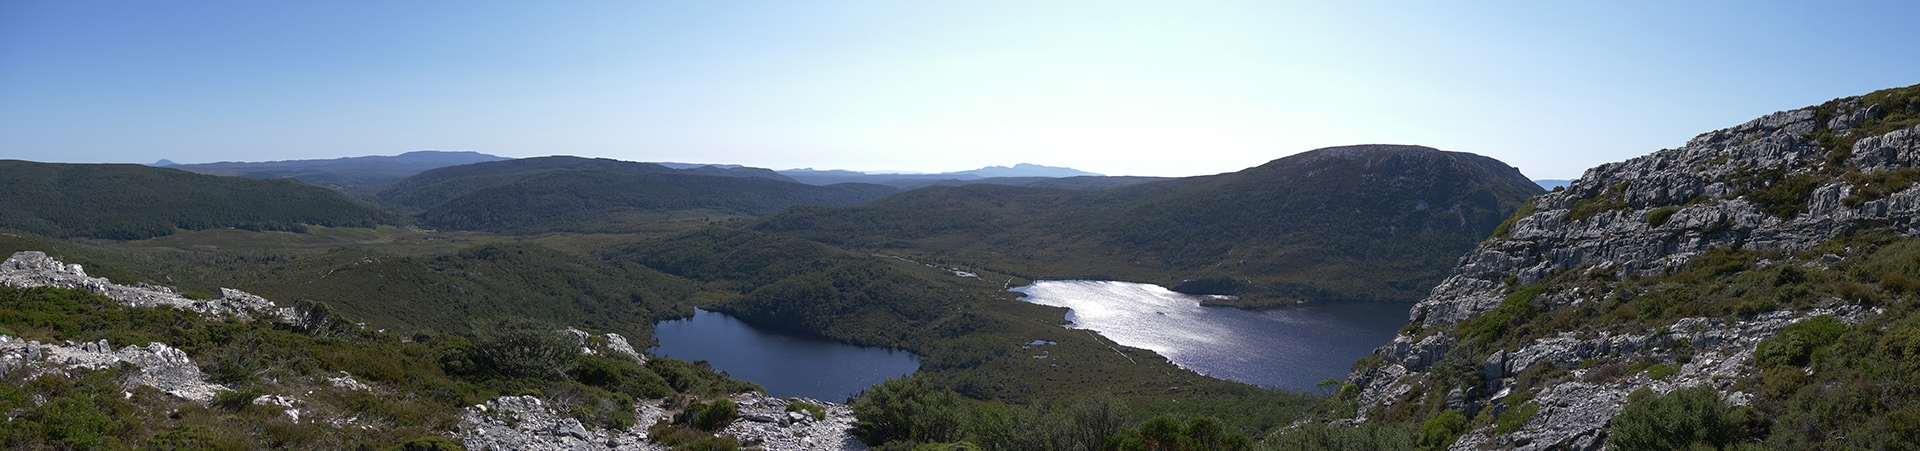 L'ascension de Cradle Mountain en 7h<br><br> 6